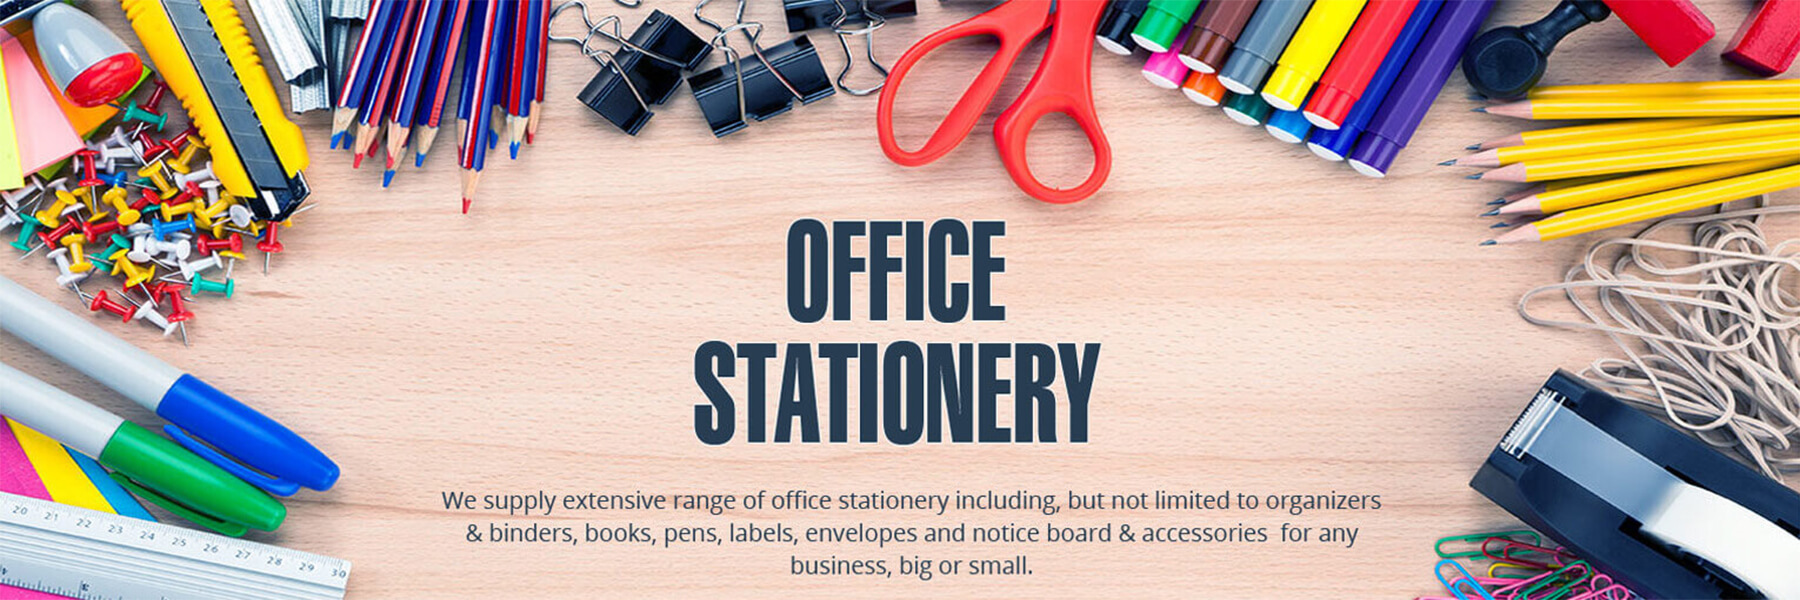 Wholesale Stationery Products